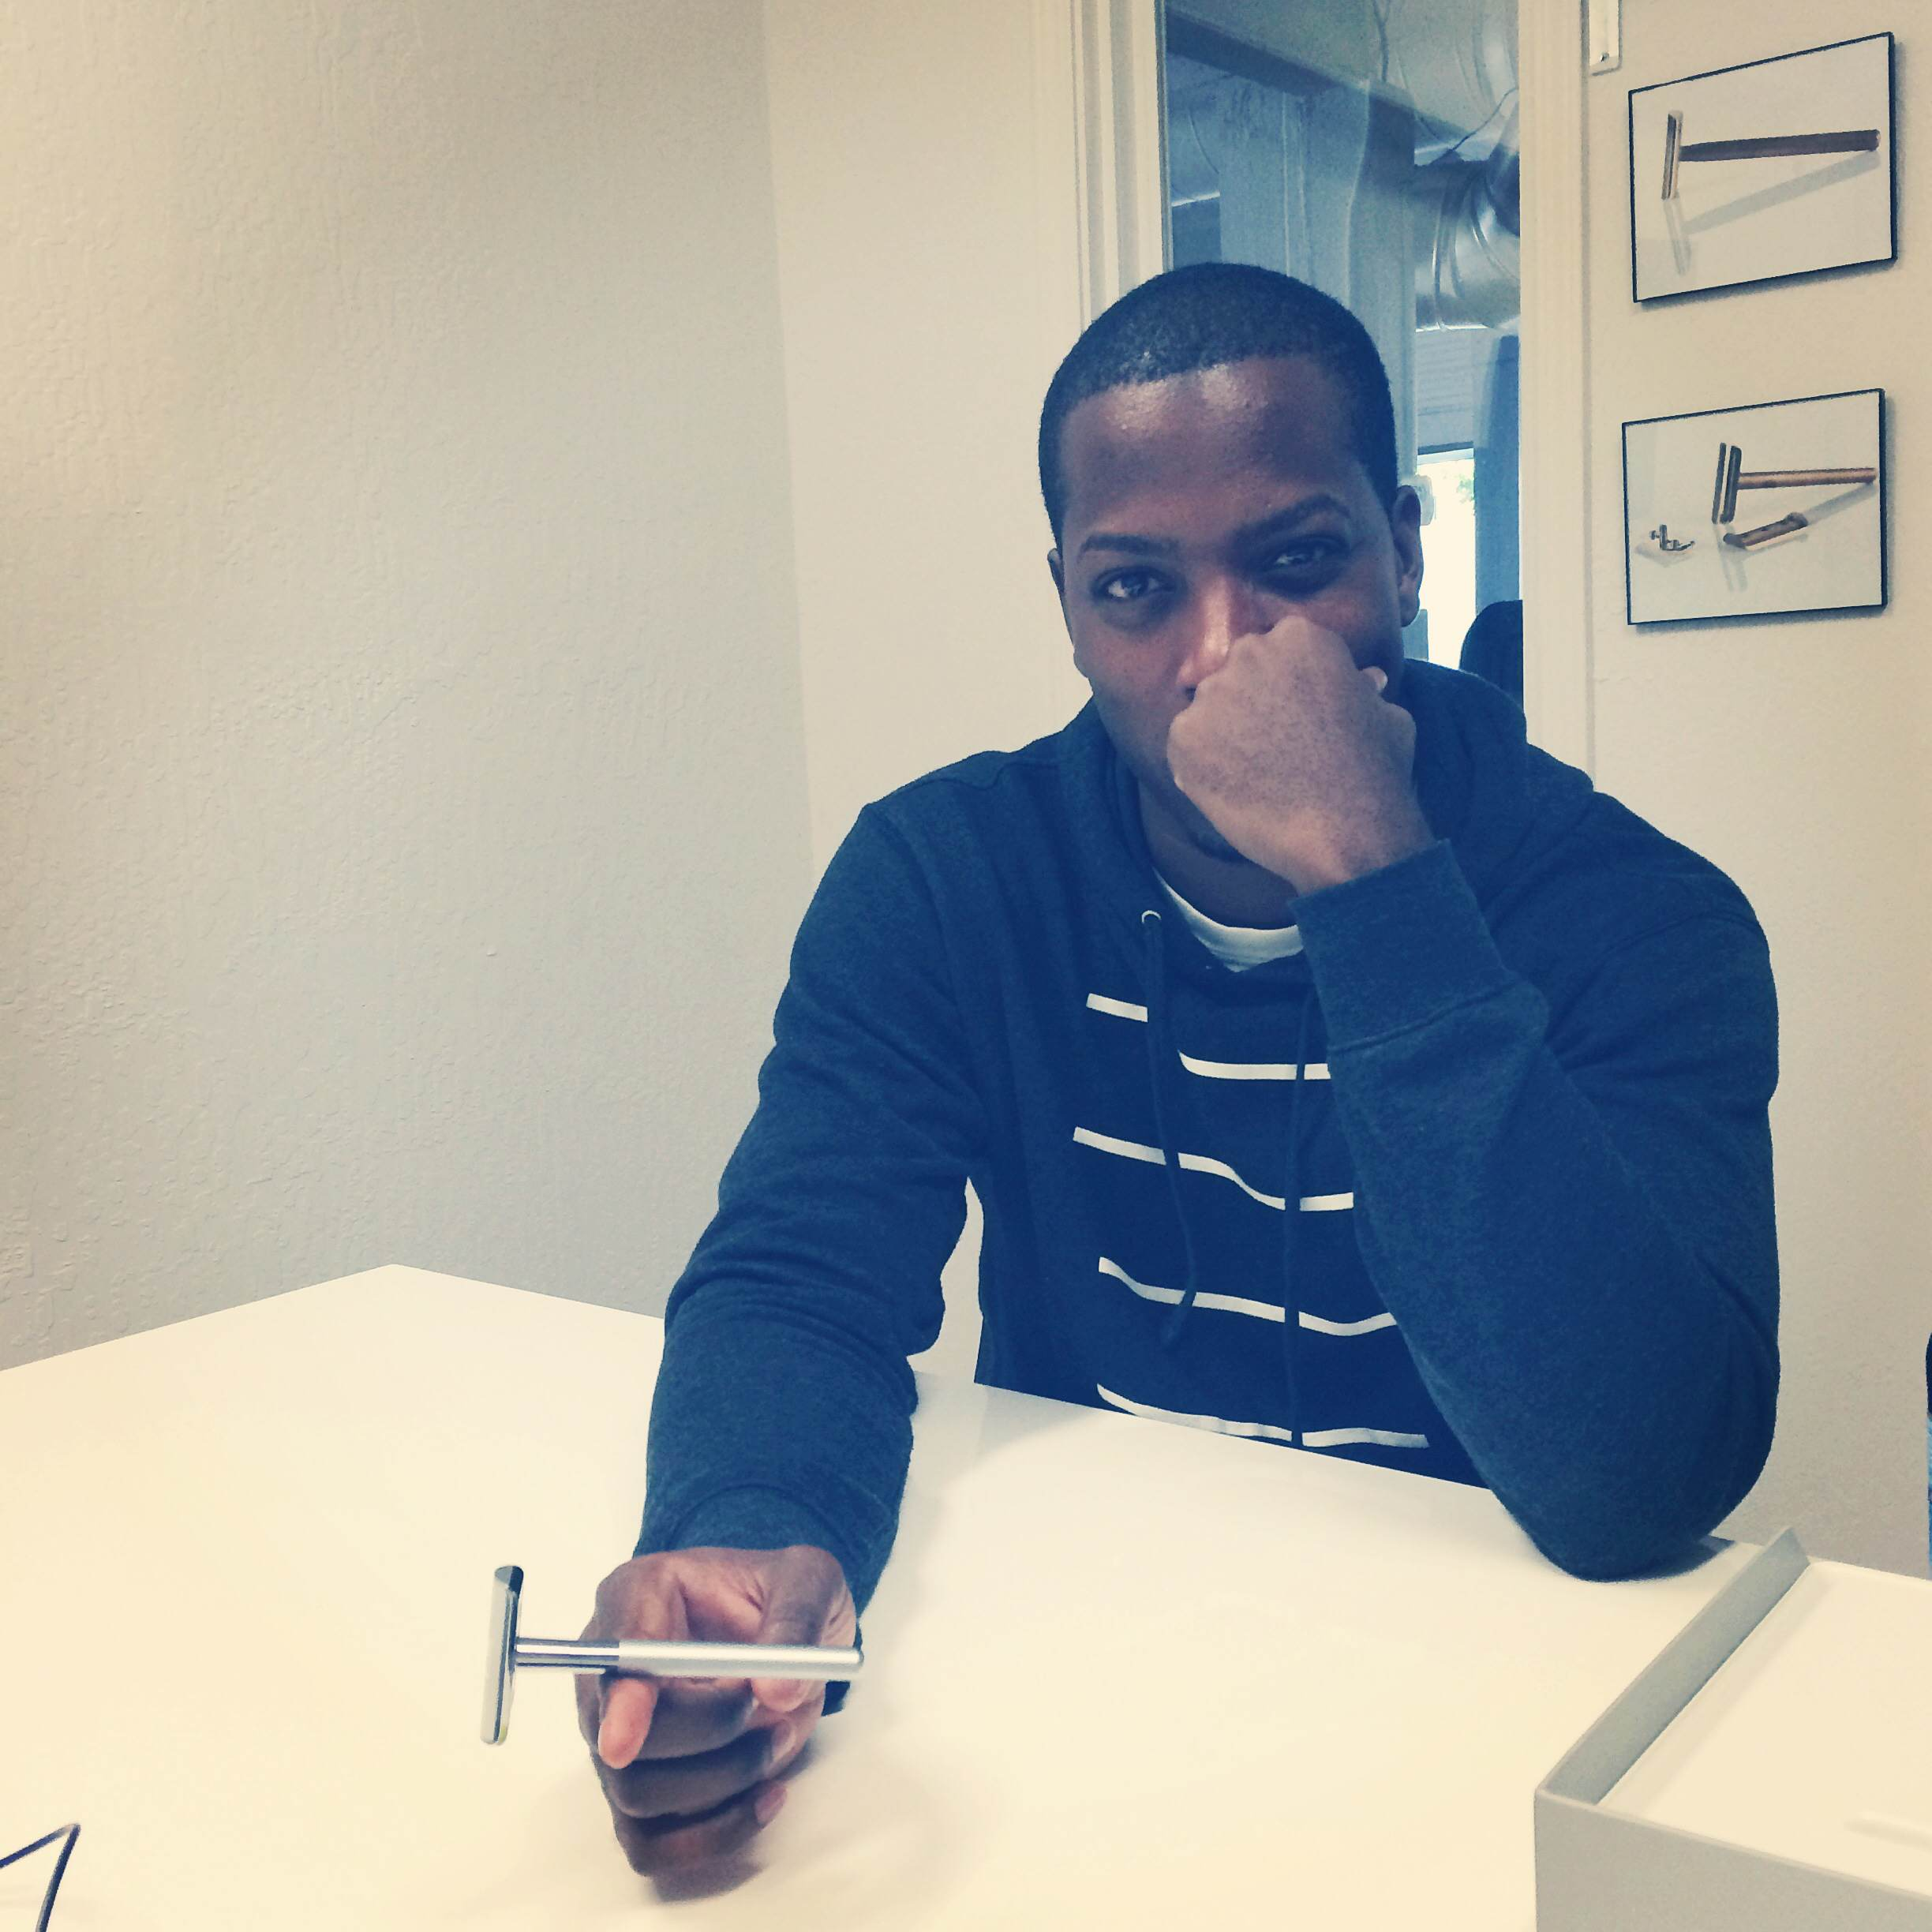 Walker shows off his razor design at Bevel's offices in Palo Alto in October.